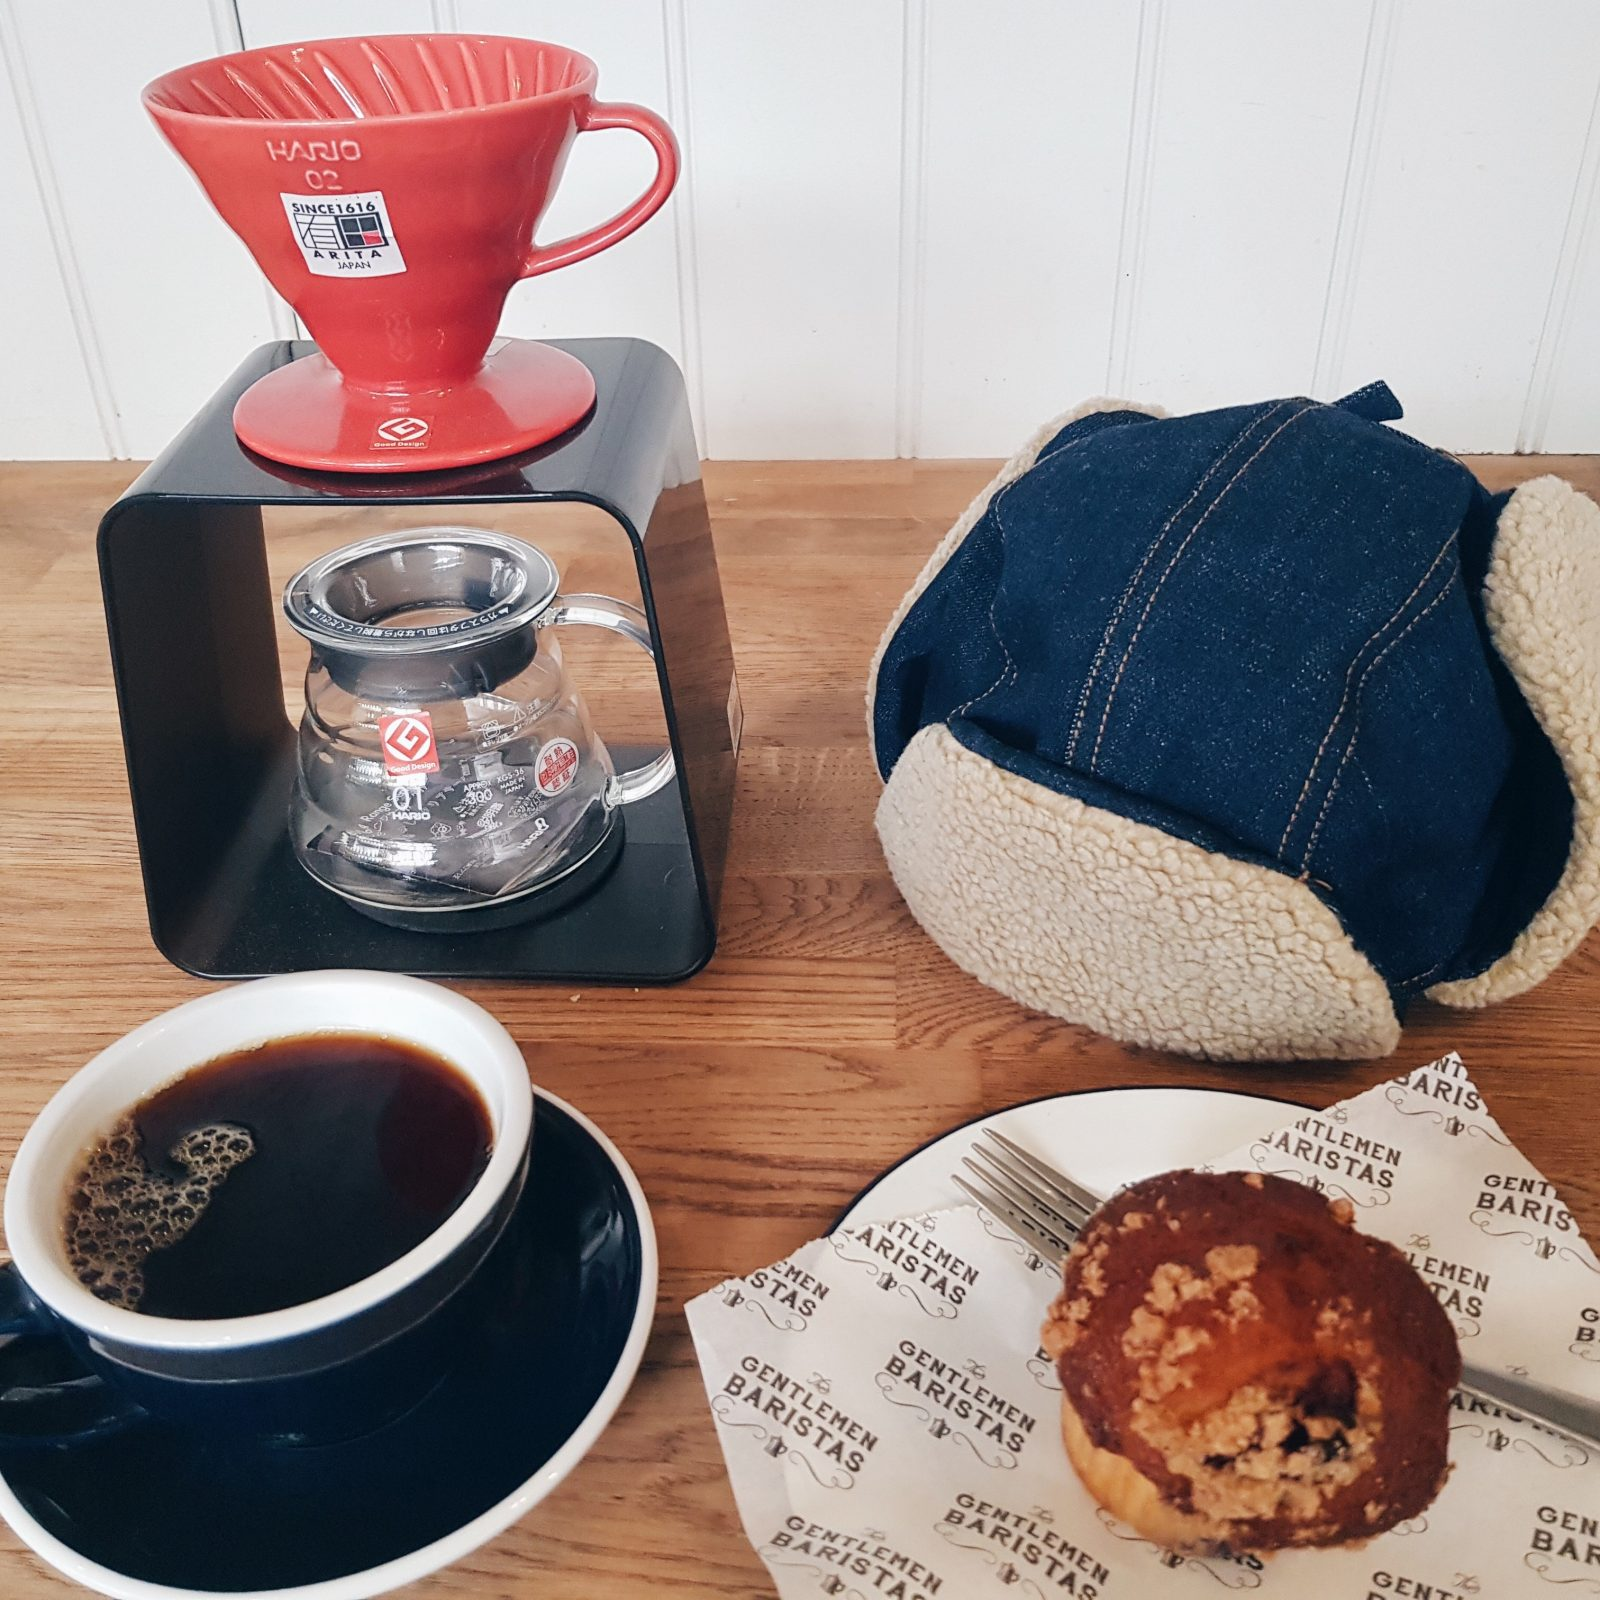 Americano and muffin for £3.50